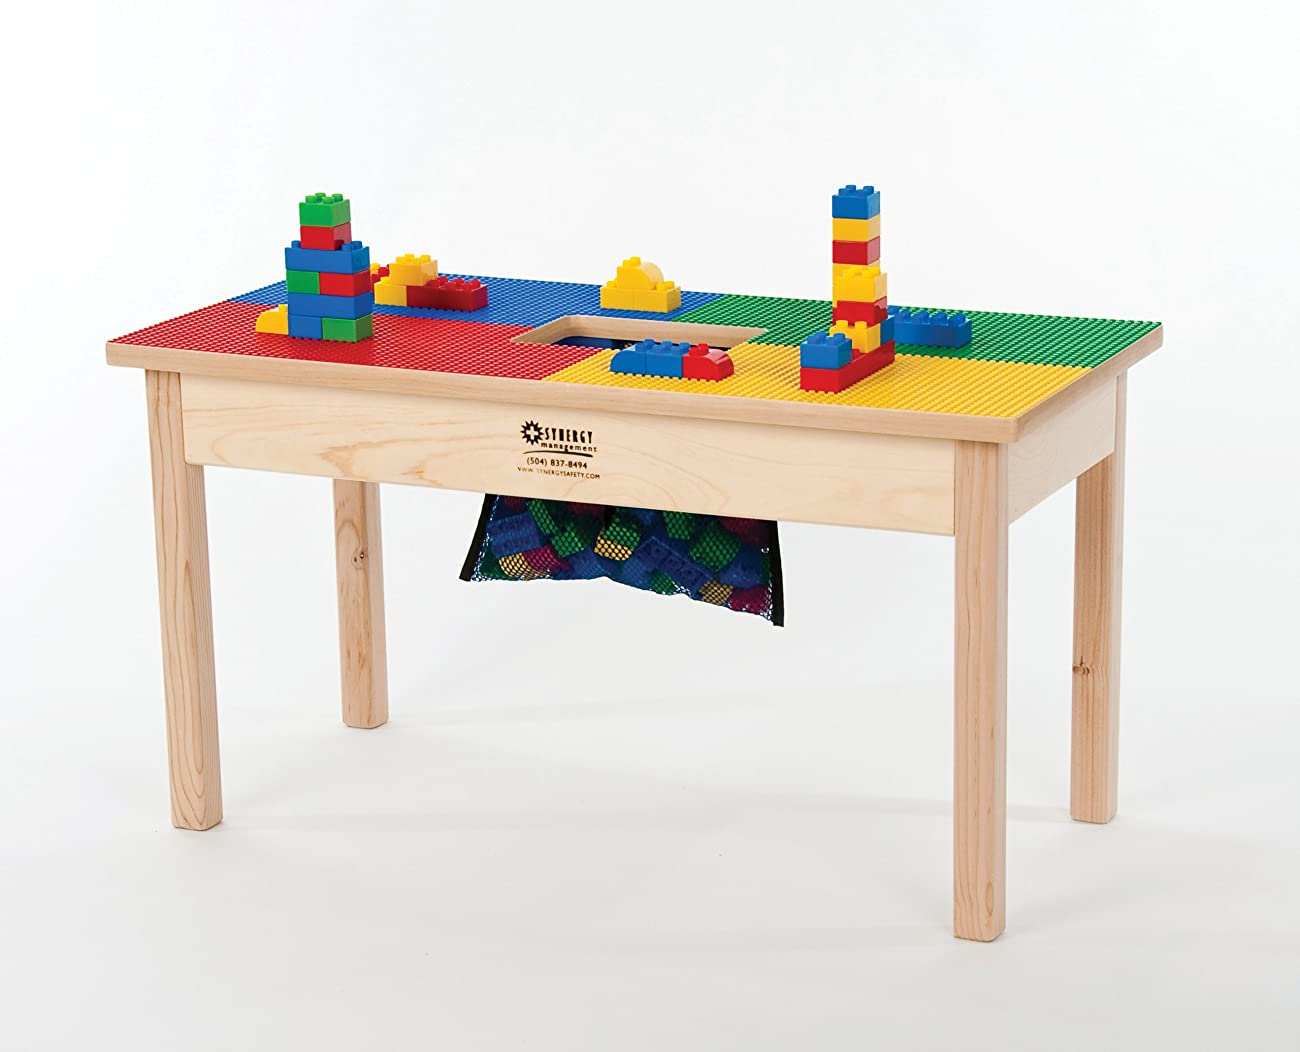 lego base plates for table building top toys gifts for boys. Black Bedroom Furniture Sets. Home Design Ideas